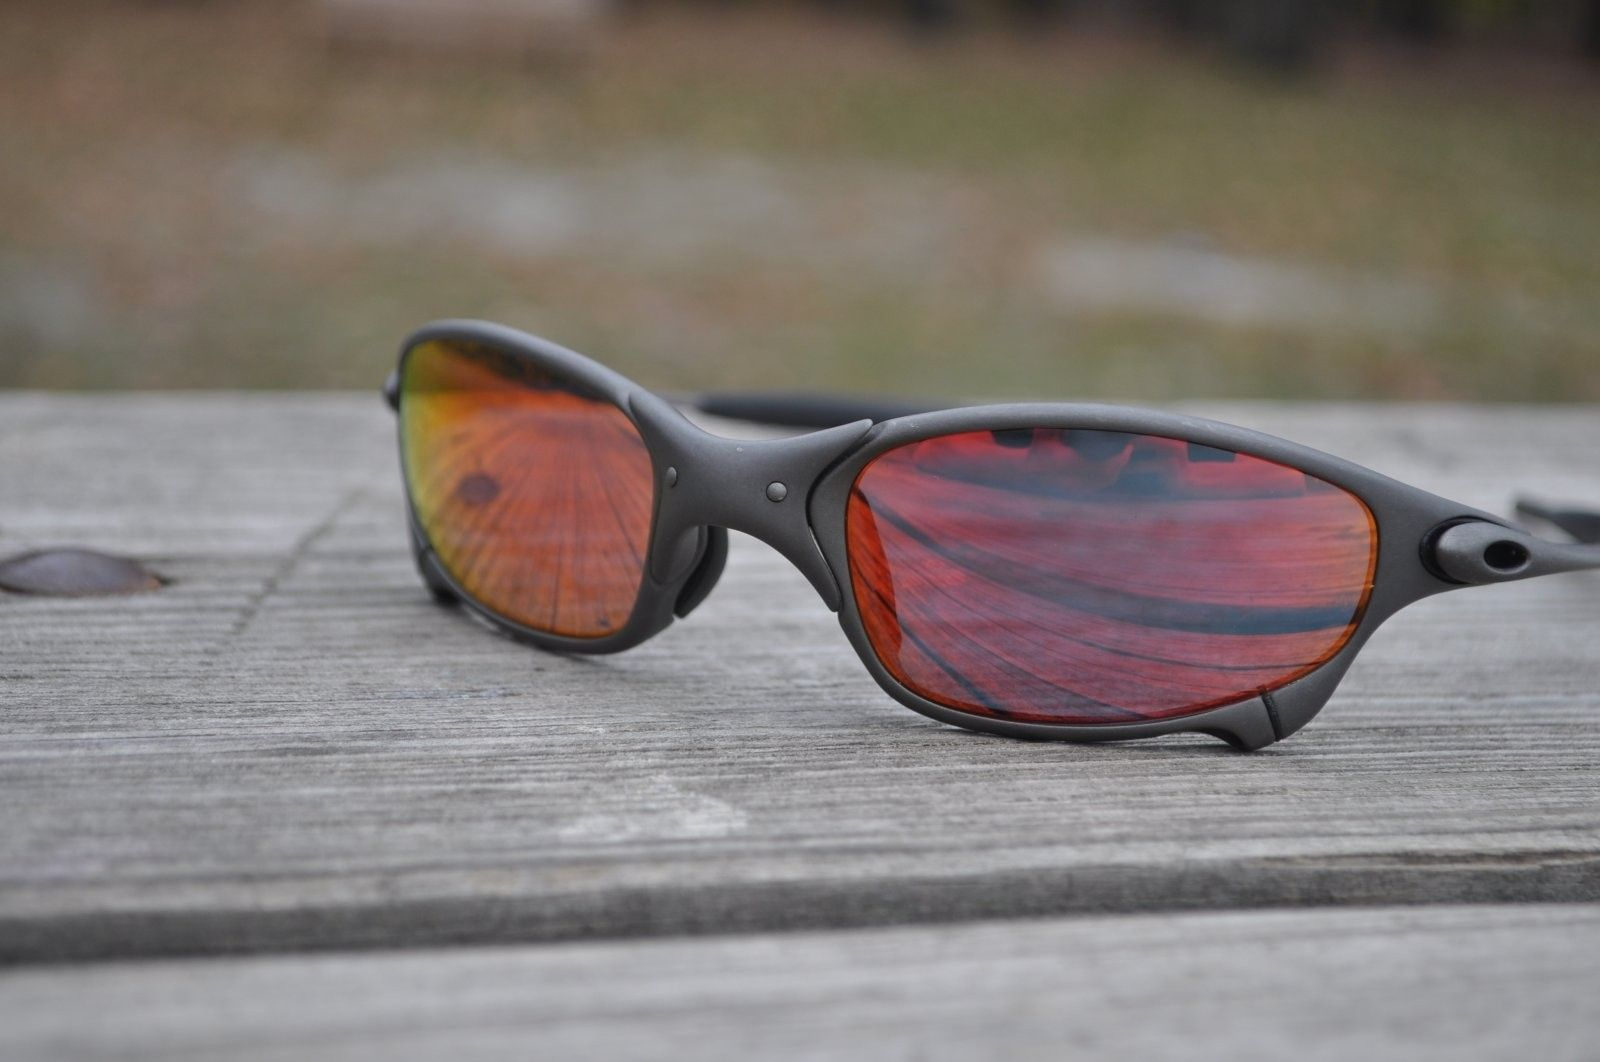 Oakley Olympic Radarlocks and more Purchases 2014 - 2.JPG